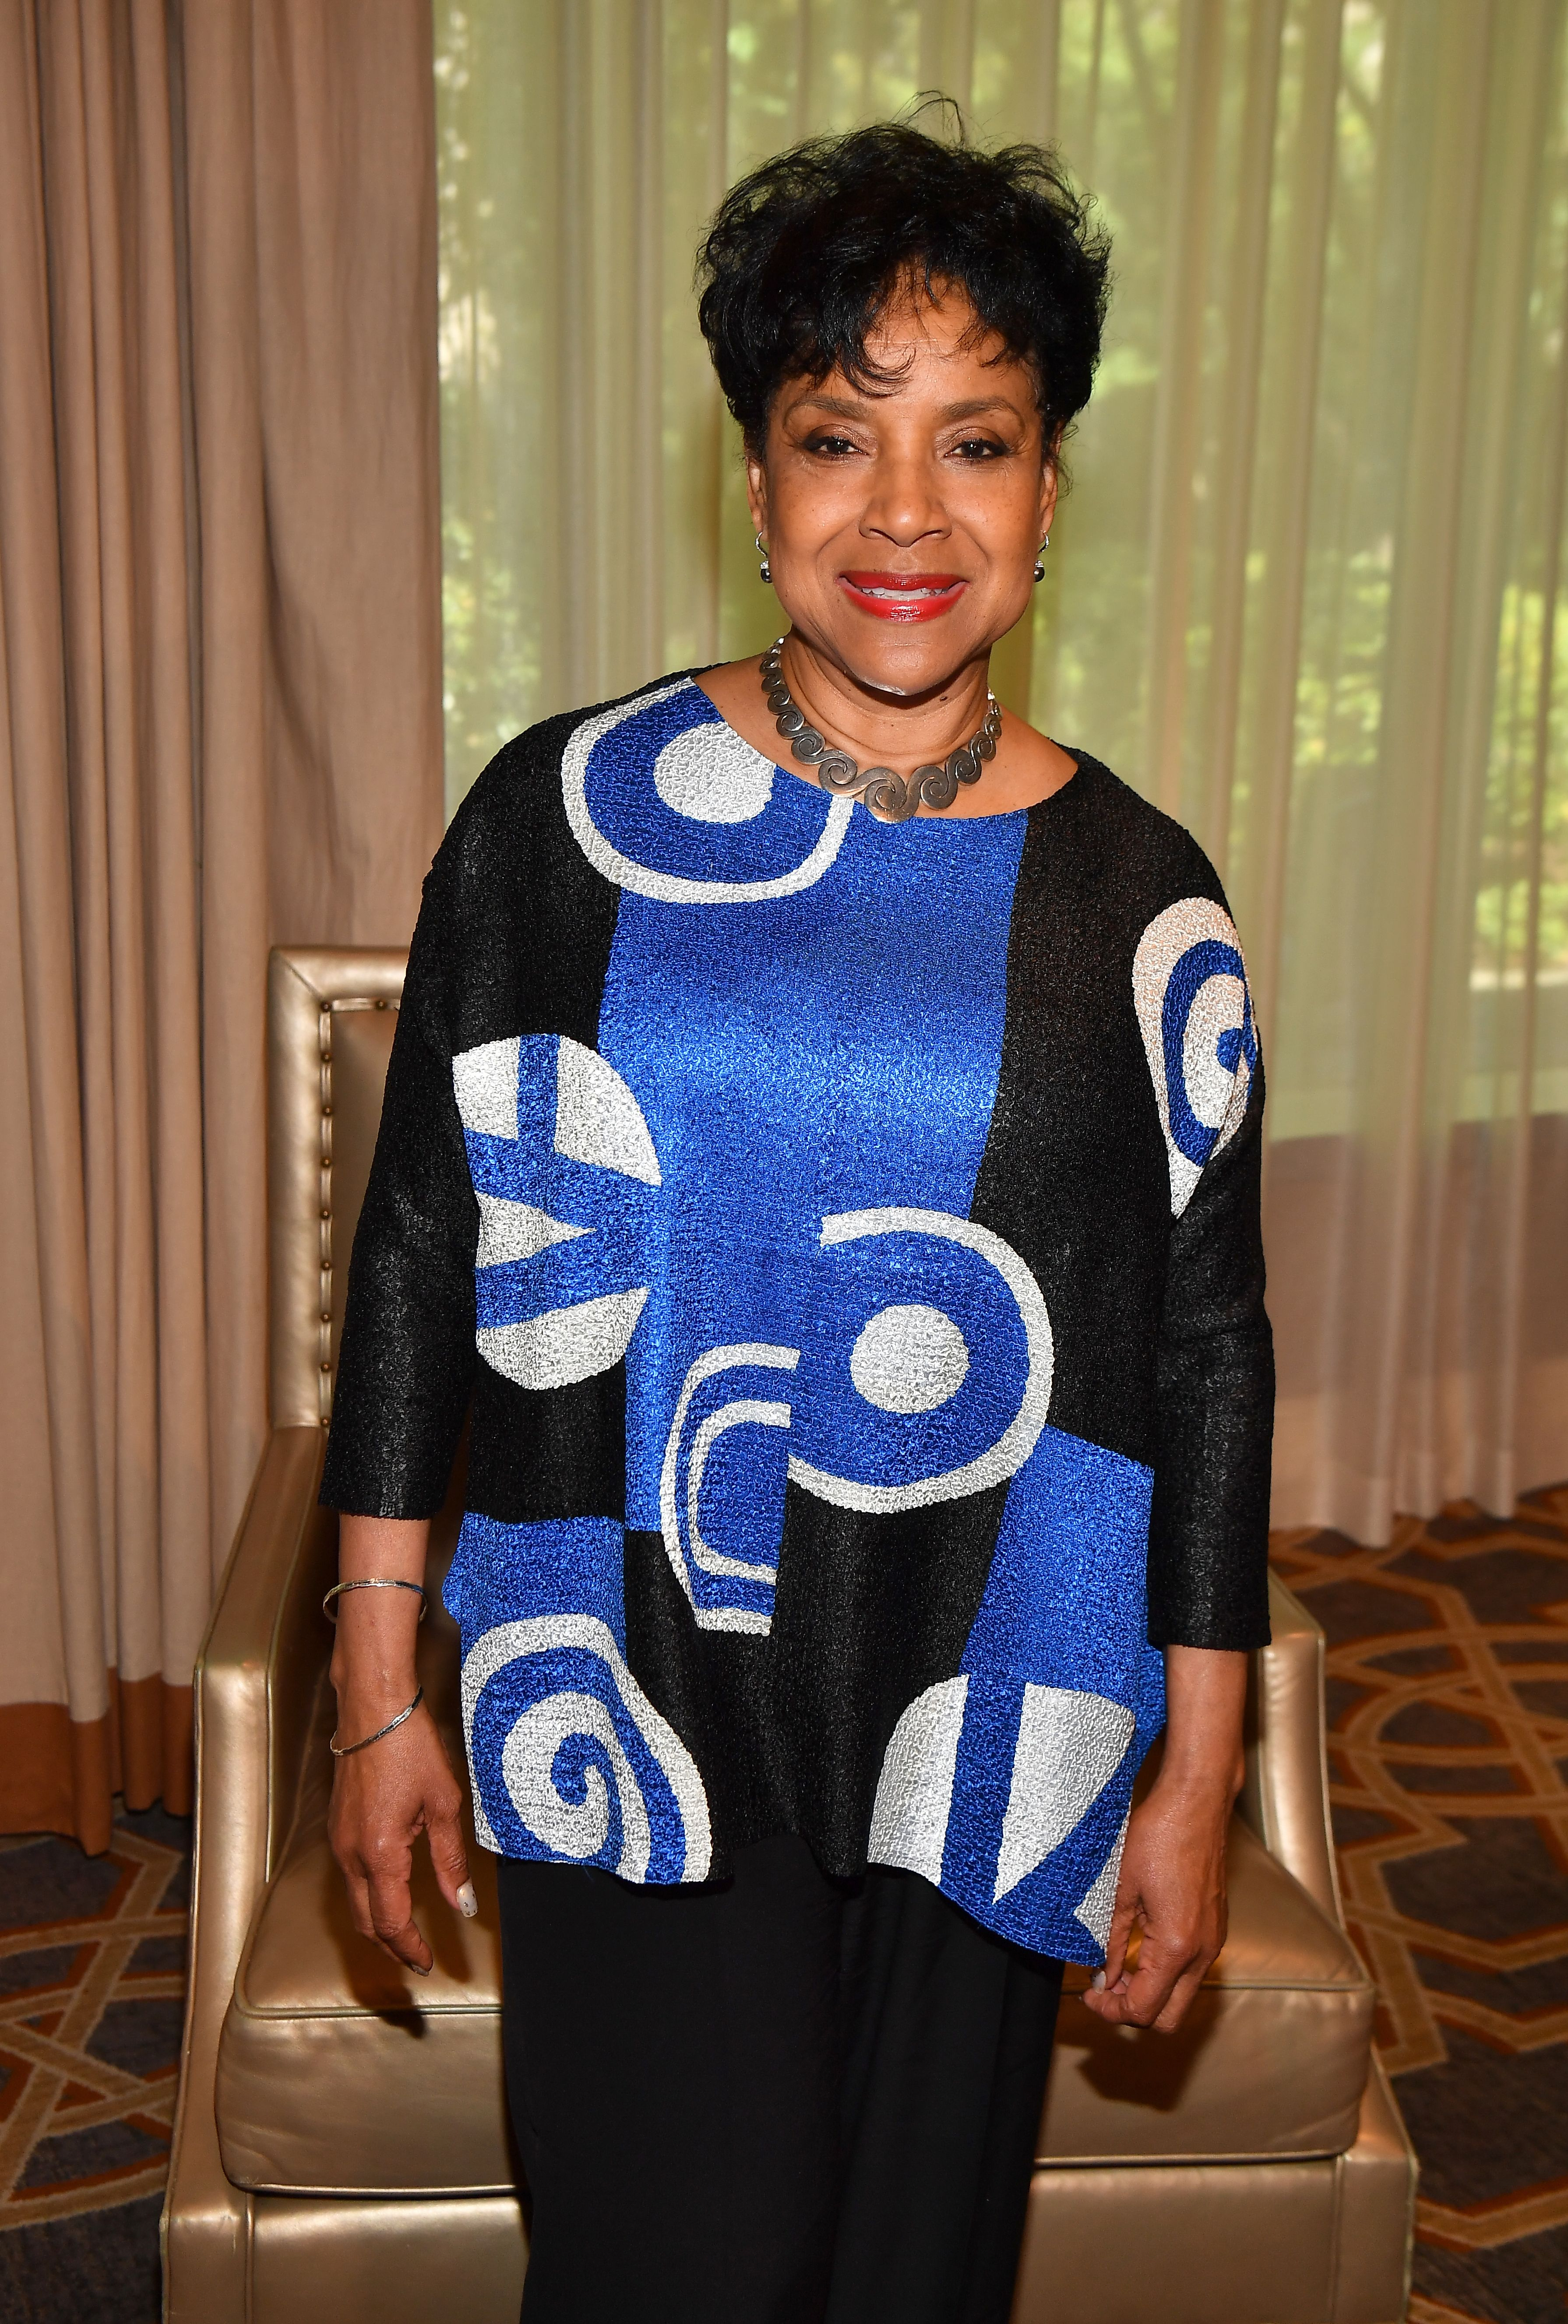 Phylicia Rashad at the True Colors Applauds Awards Brunch on June 01, 2019 in Atlanta. | Photo: Getty Images